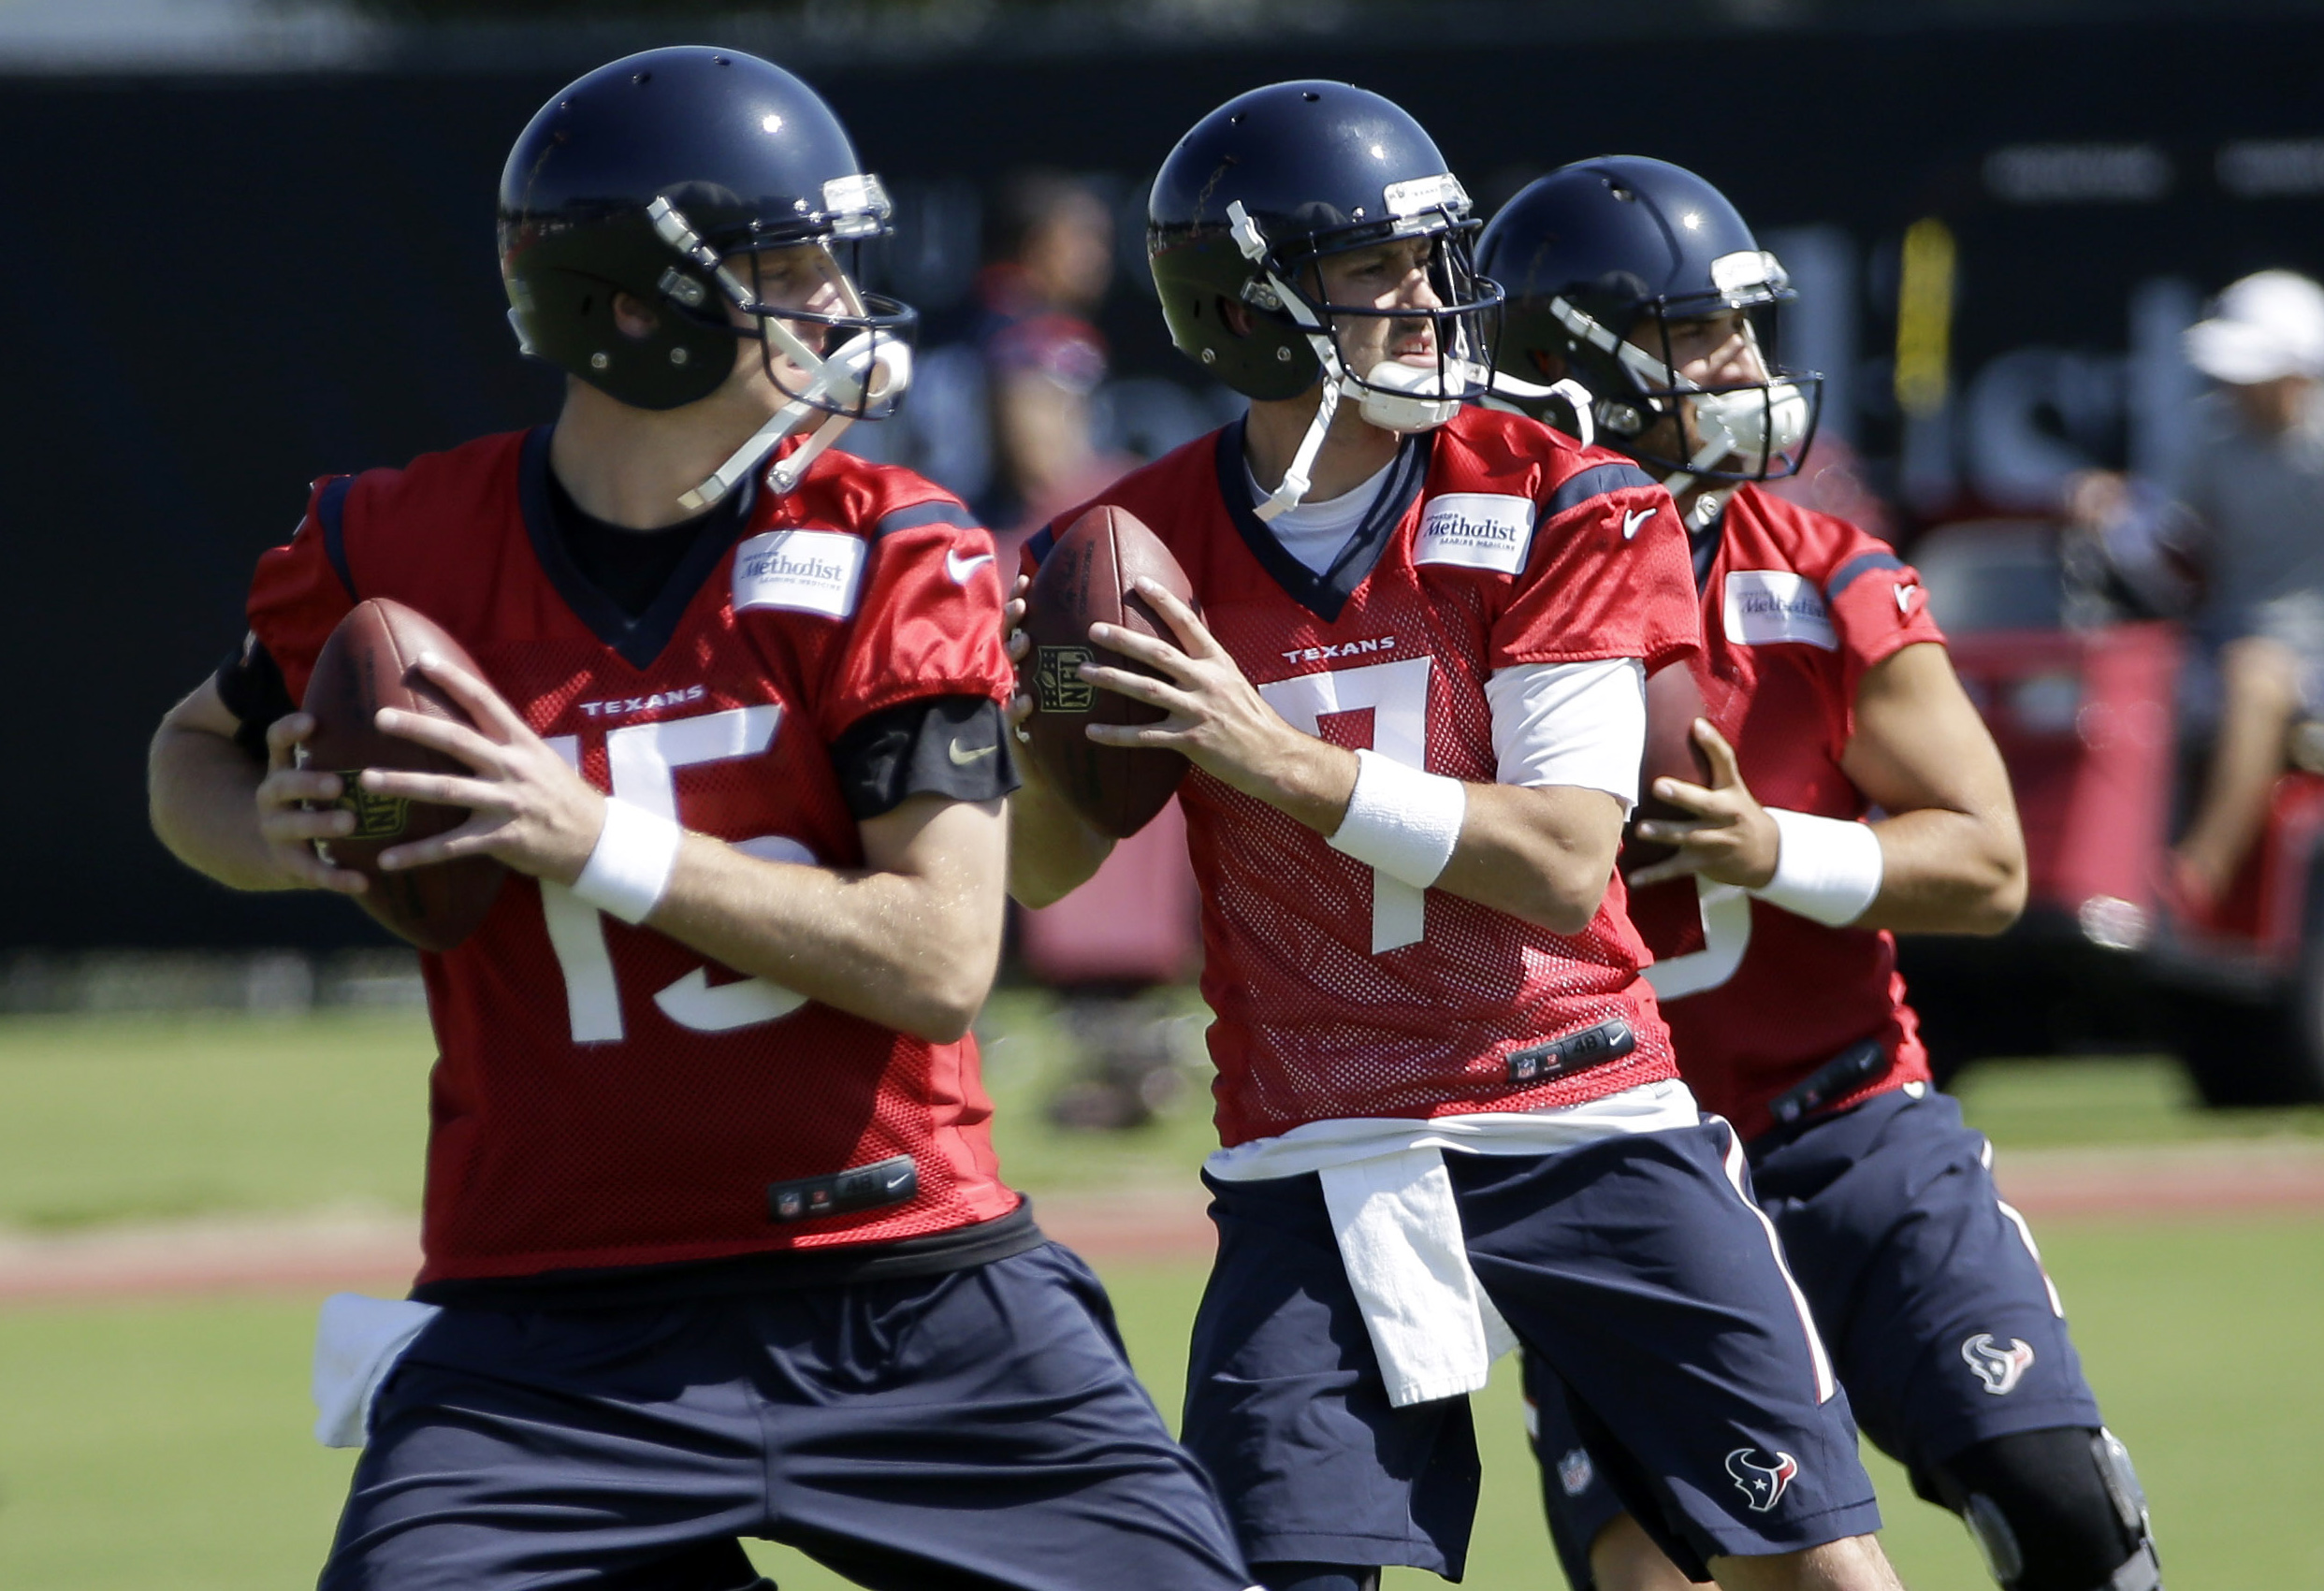 FILE - In this June 1, 2015, file photo, Houston Texans quarterbacks, from left to right, Ryan Mallett, Brian Hoyer and Tom Savage drop back during an NFL football organized team activity in Houston. Hoyer was terrible in his Houston debut and was benched